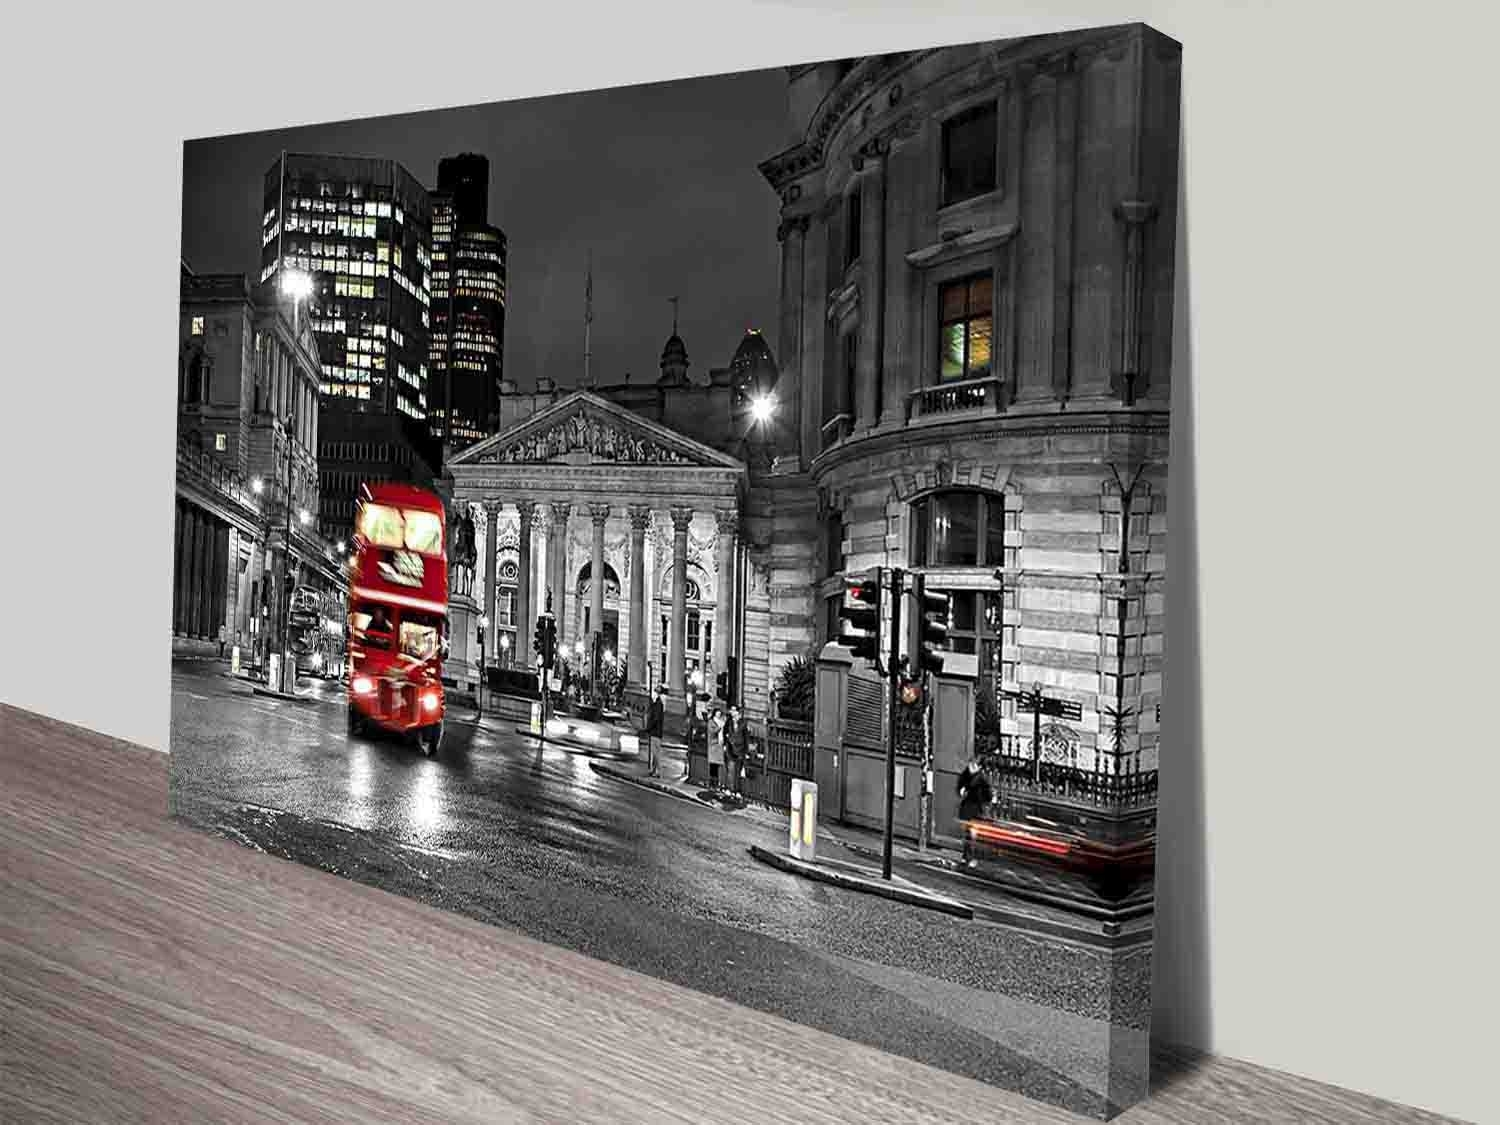 London Red Double Decker Bus Black And White City Scene Wall Art With Most Up To Date London Wall Art (View 18 of 20)